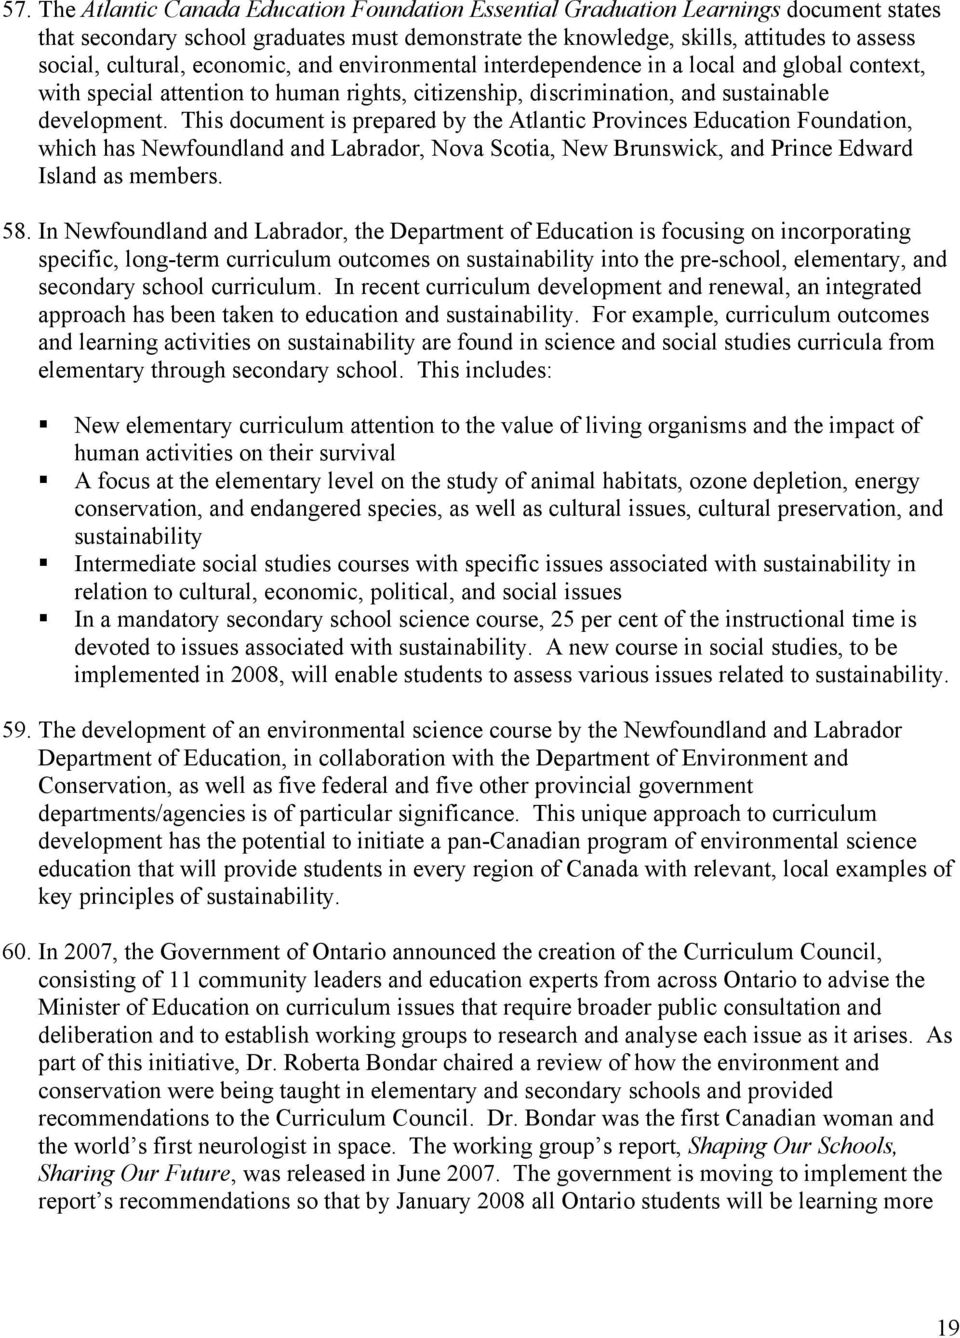 This document is prepared by the Atlantic Provinces Education Foundation, which has Newfoundland and Labrador, Nova Scotia, New Brunswick, and Prince Edward Island as members. 58.